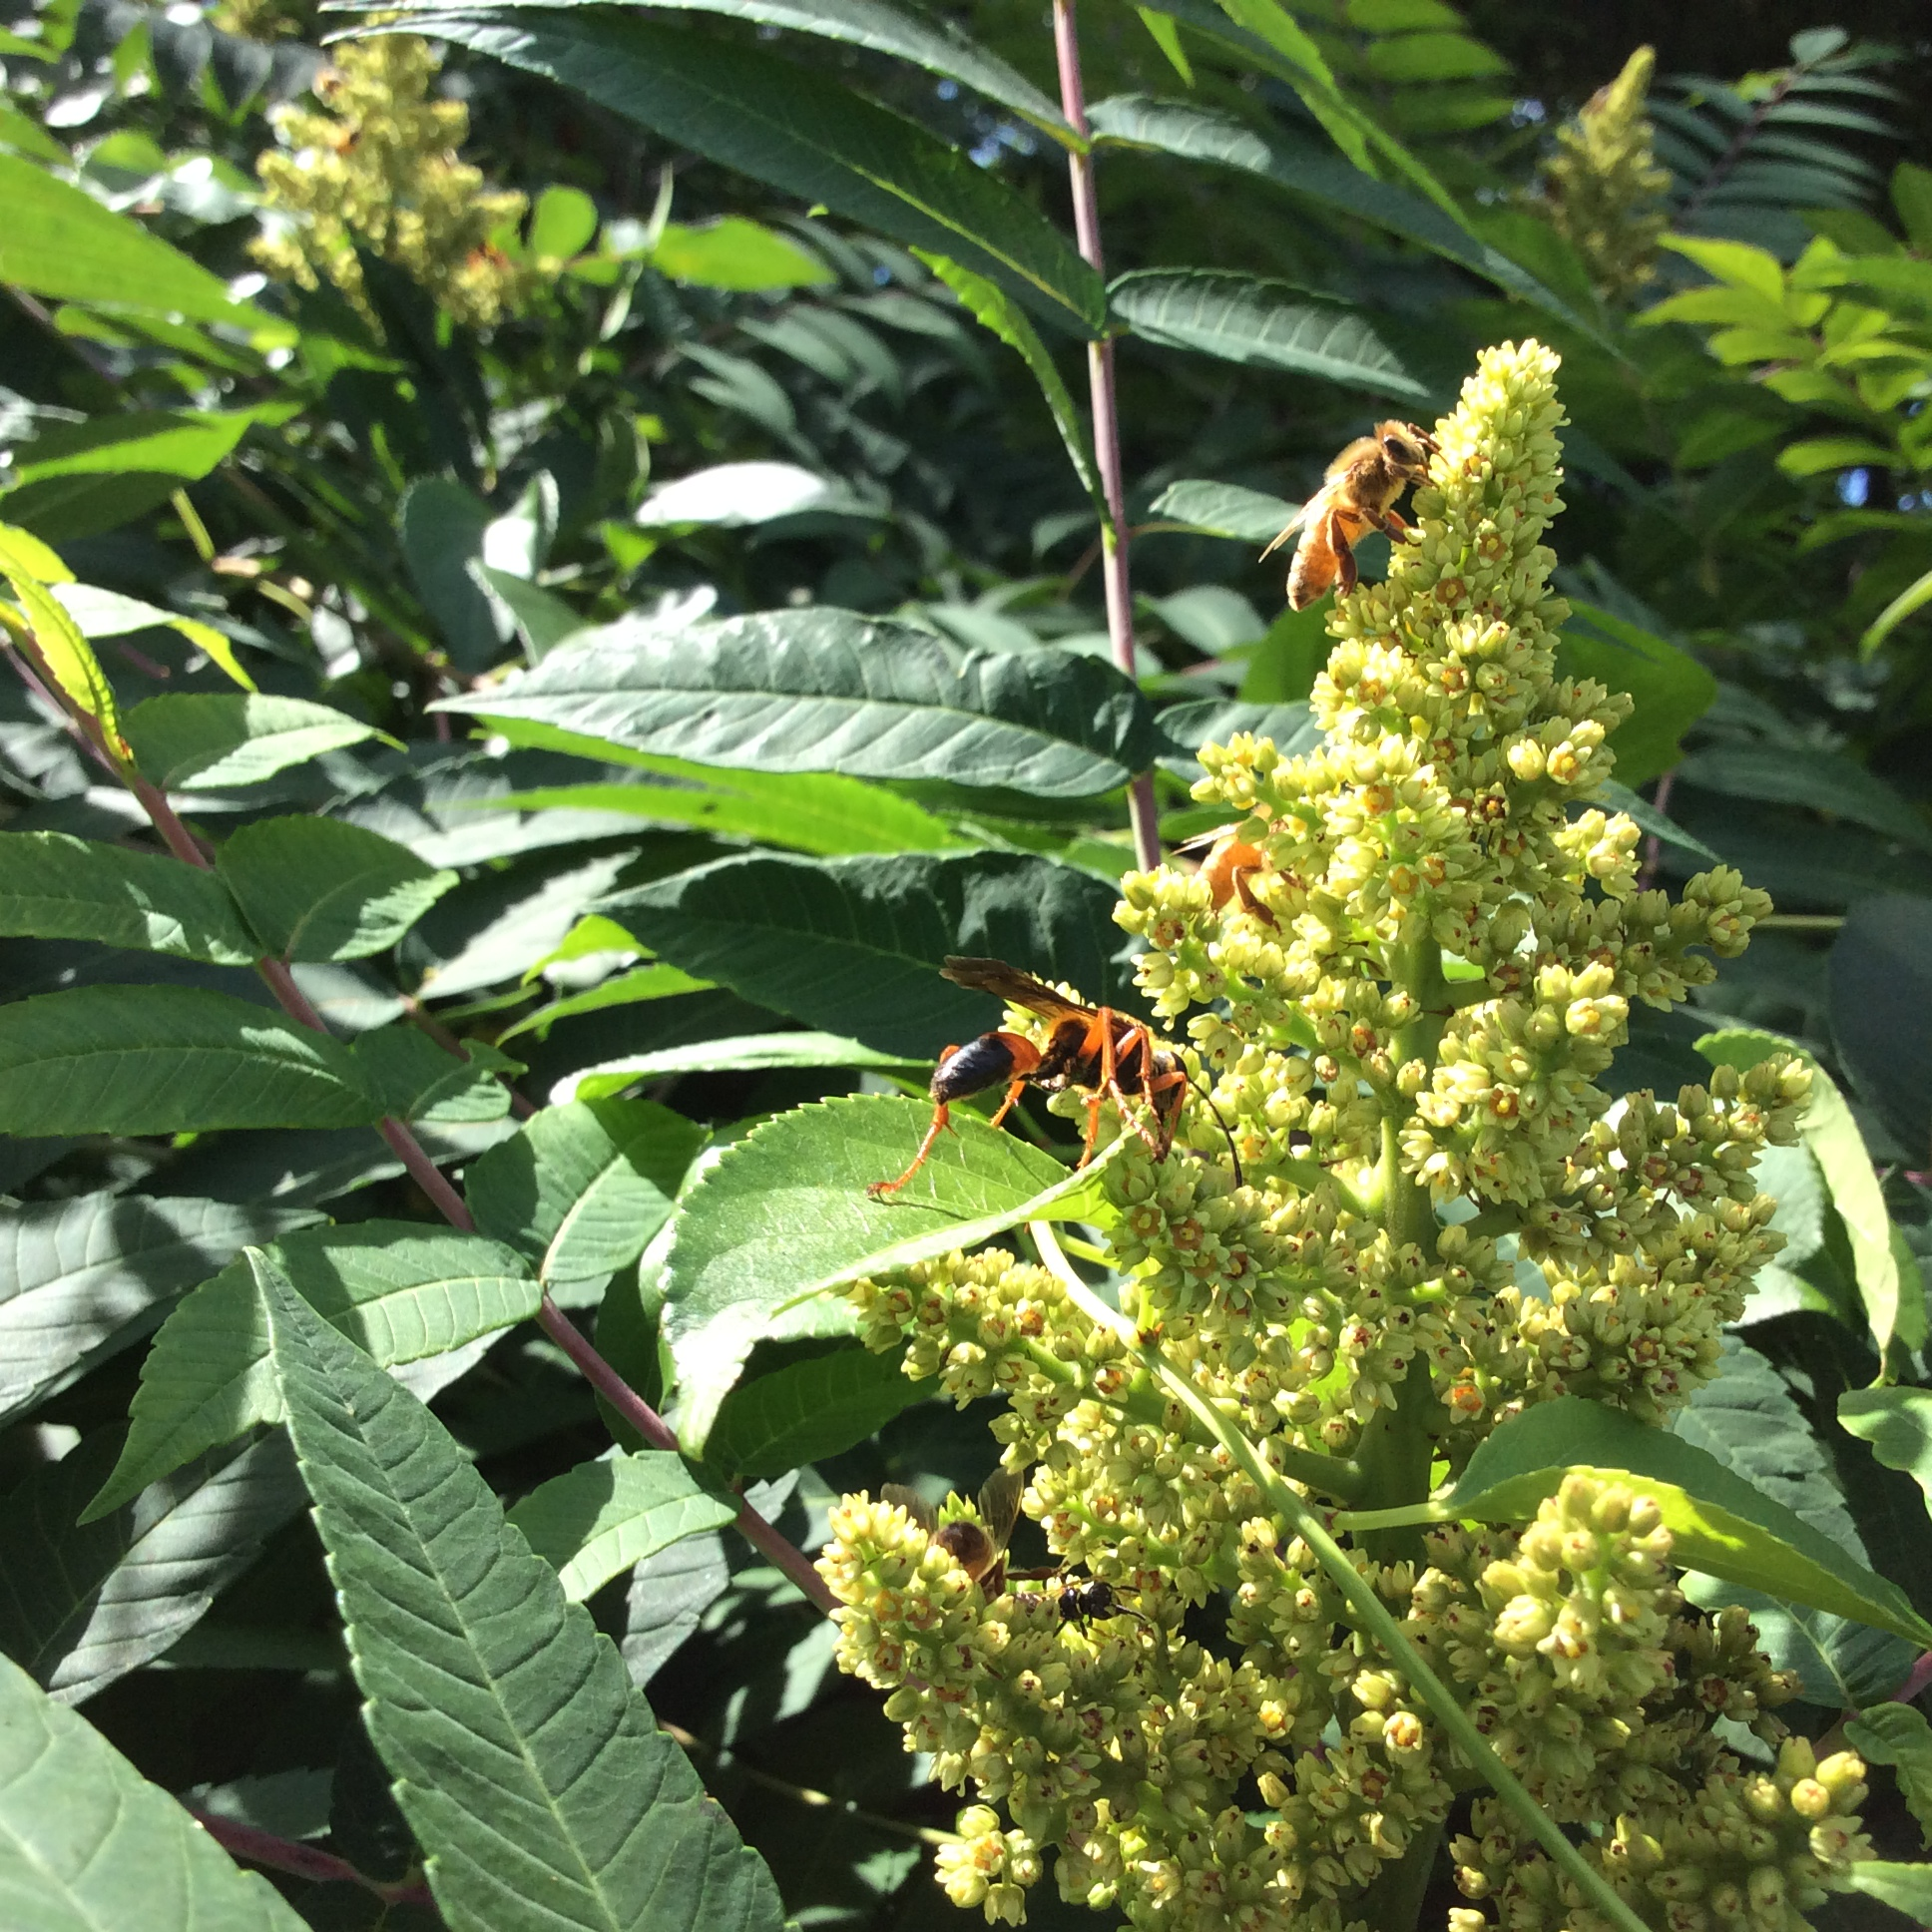 Bee and wasp on Sumac